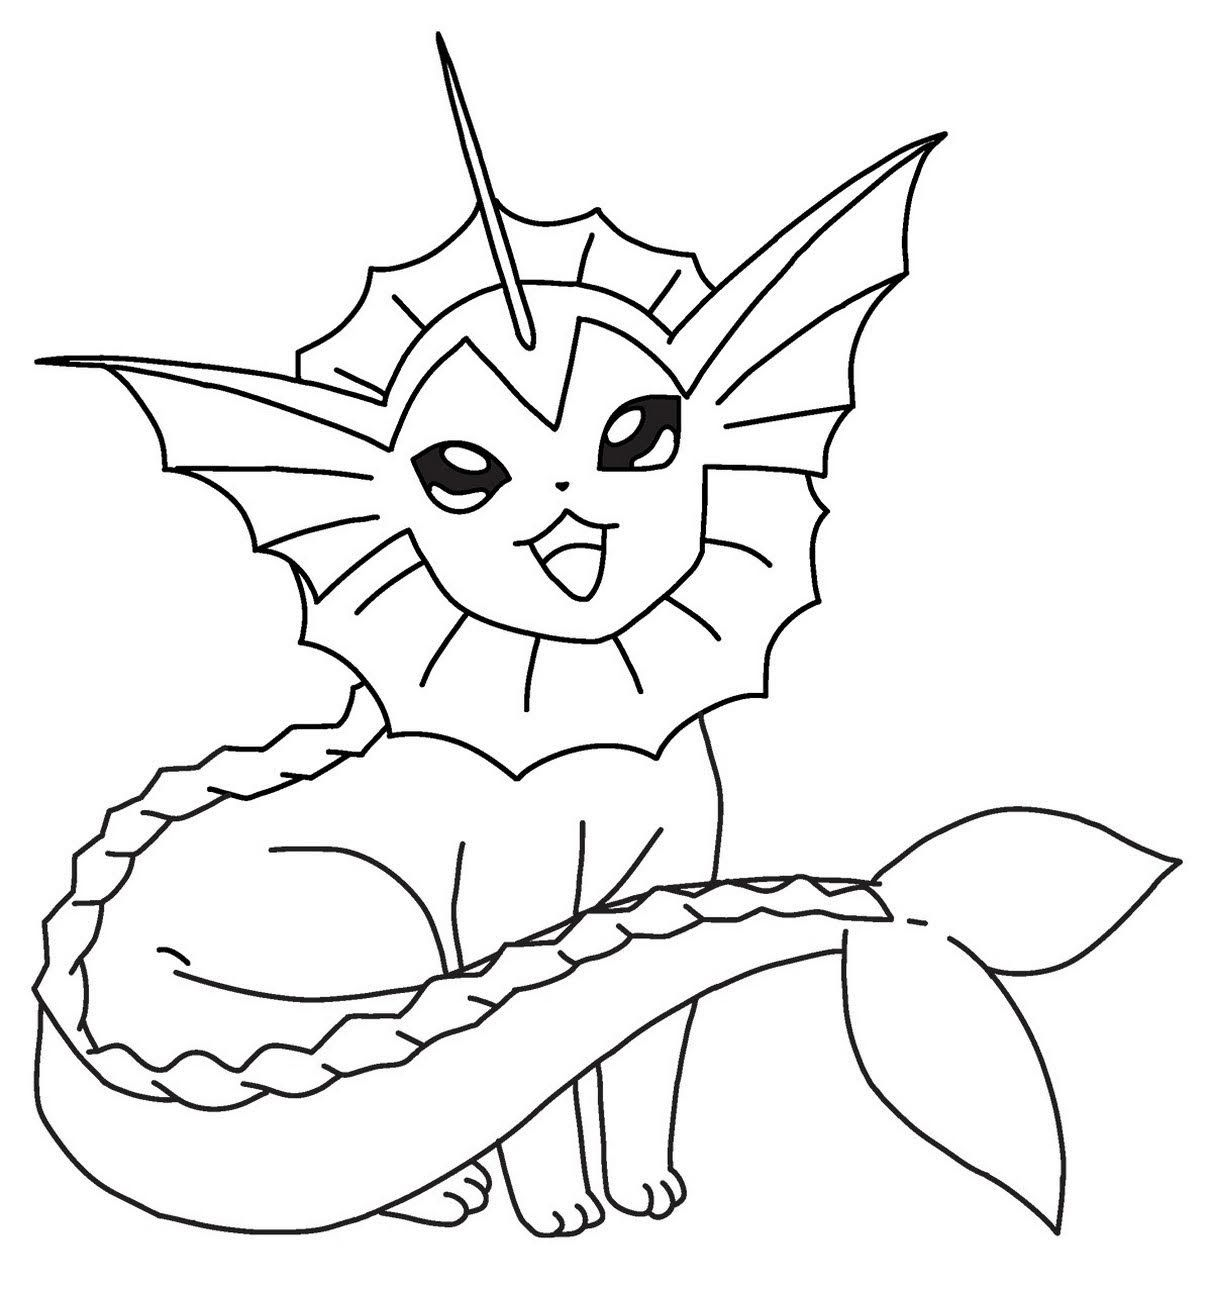 Pokemon Vaporeon Coloring Pages Eevee Evolution Pokemon Coloring Sheets Pokemon Coloring Pages Pokemon Coloring